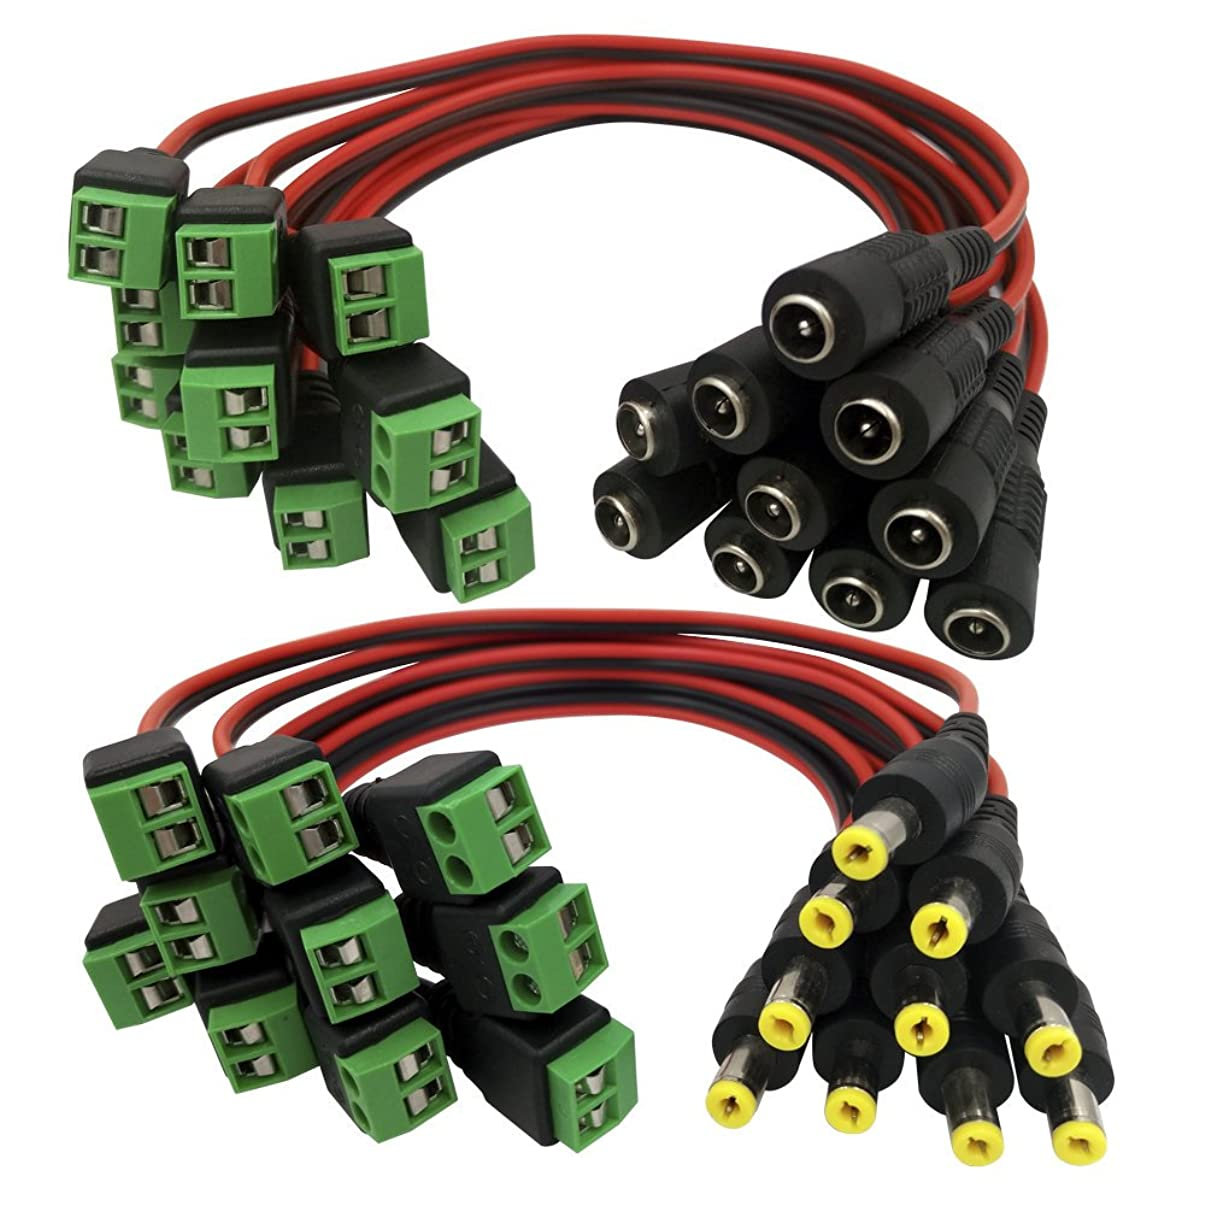 Igreeman 10 Pair Male & Female DC Power Pigtail 18 AWG 5A Cable Upgraded with Terminal Jack Socket 2.1mm 5.5mm Connectors for Home Security Surveillance Camera and Party Lighting